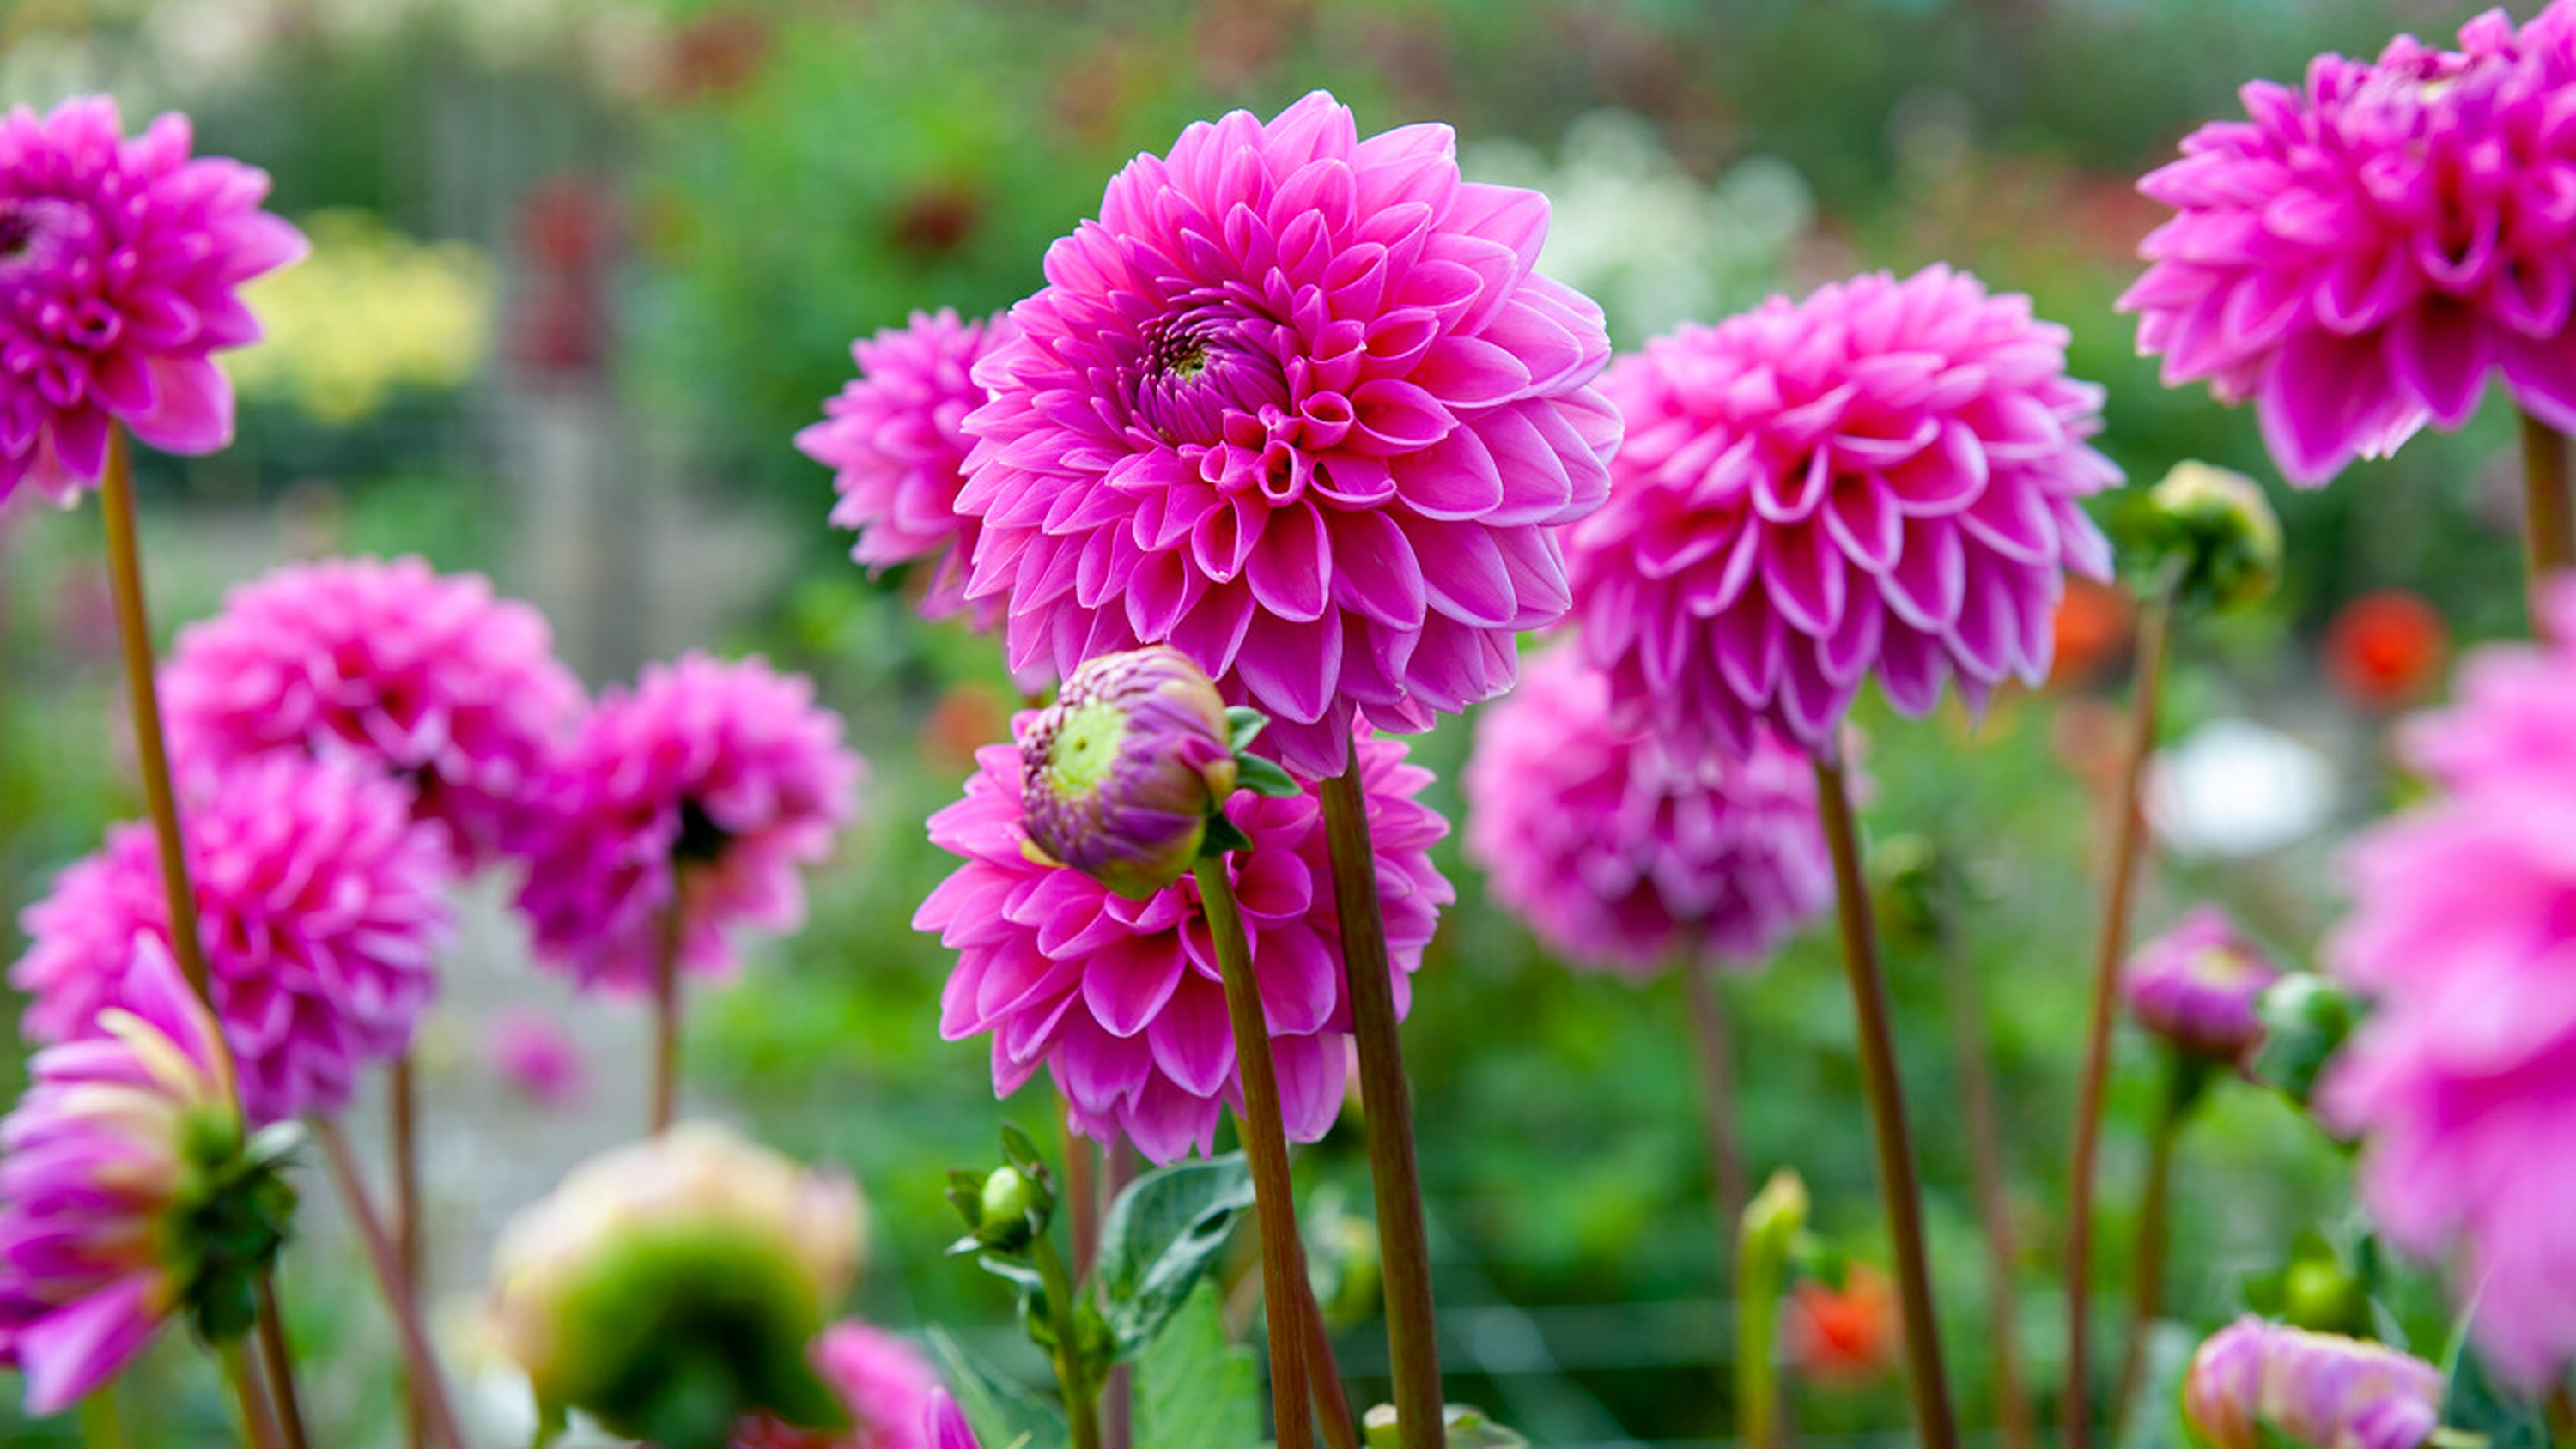 How To Grow Dahlias Follow Our Advice And Create Dazzling Displays In Your Garden Gardeningetc